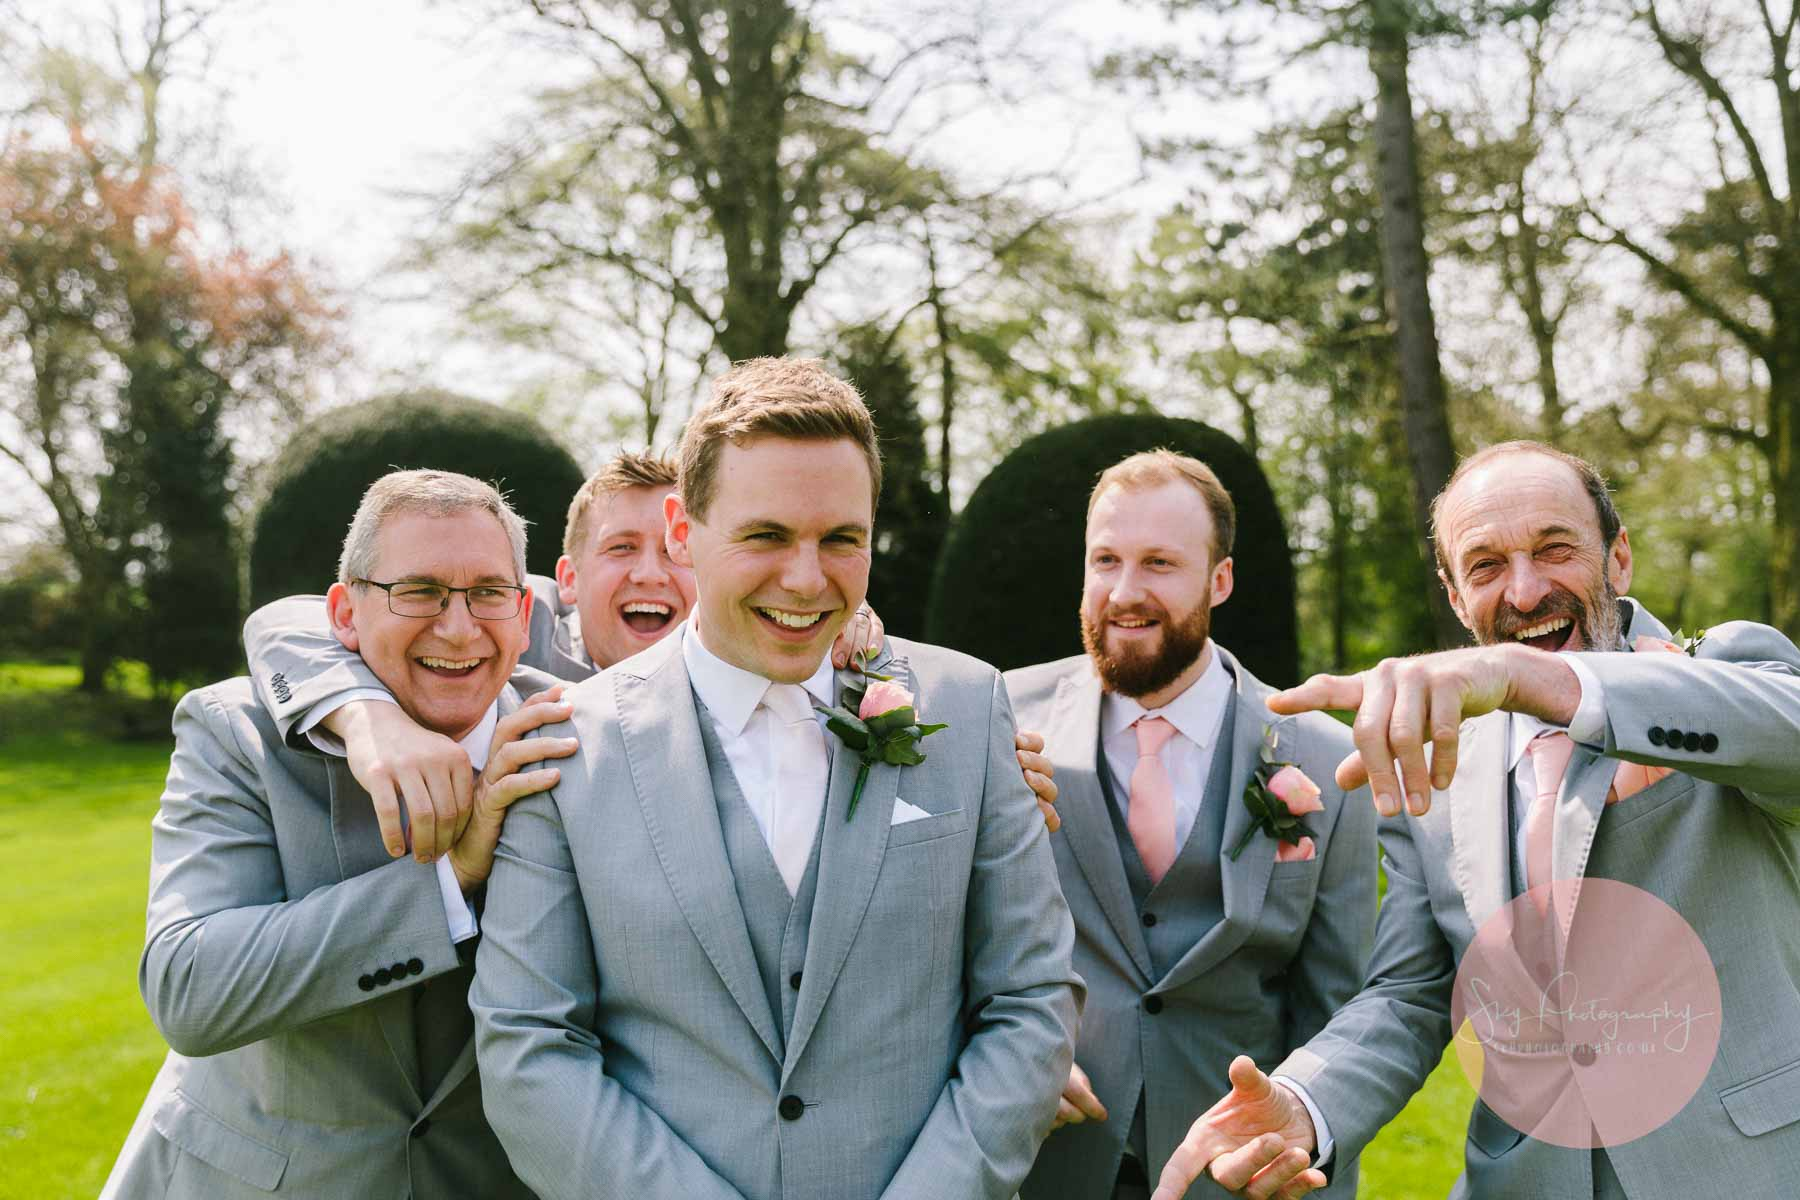 Groom being played with by groomsmen